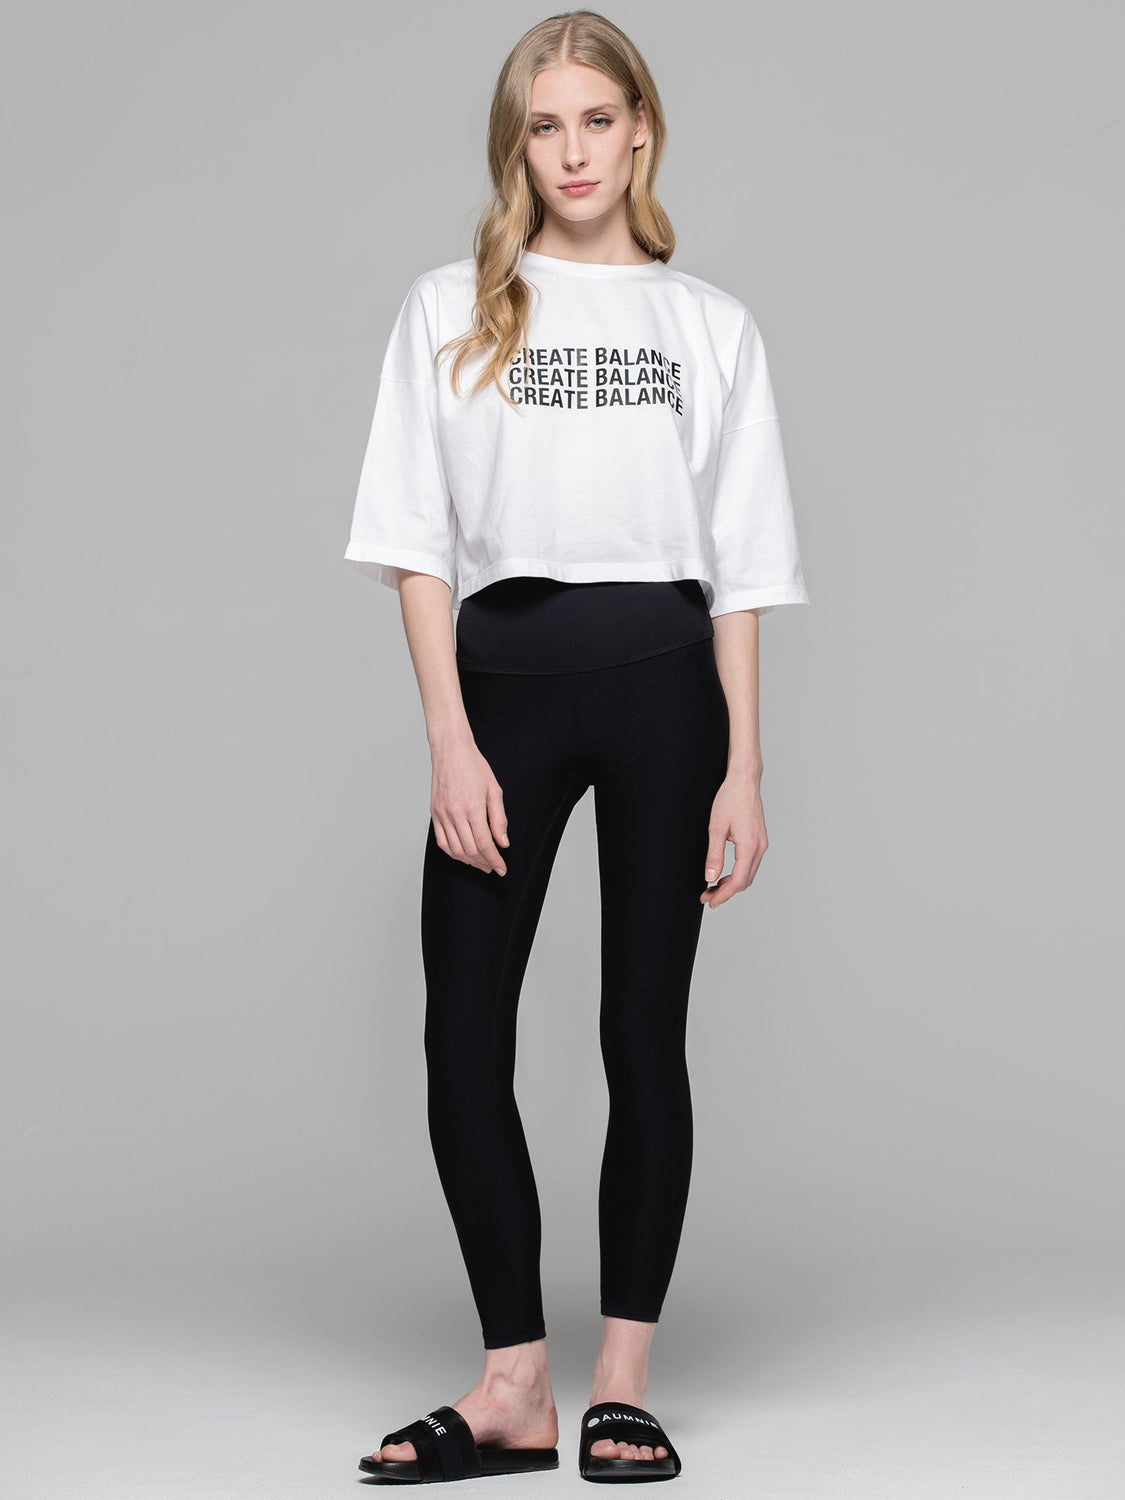 CREATE BALANCE OVERSIZED CROPPED TEE, WHITE